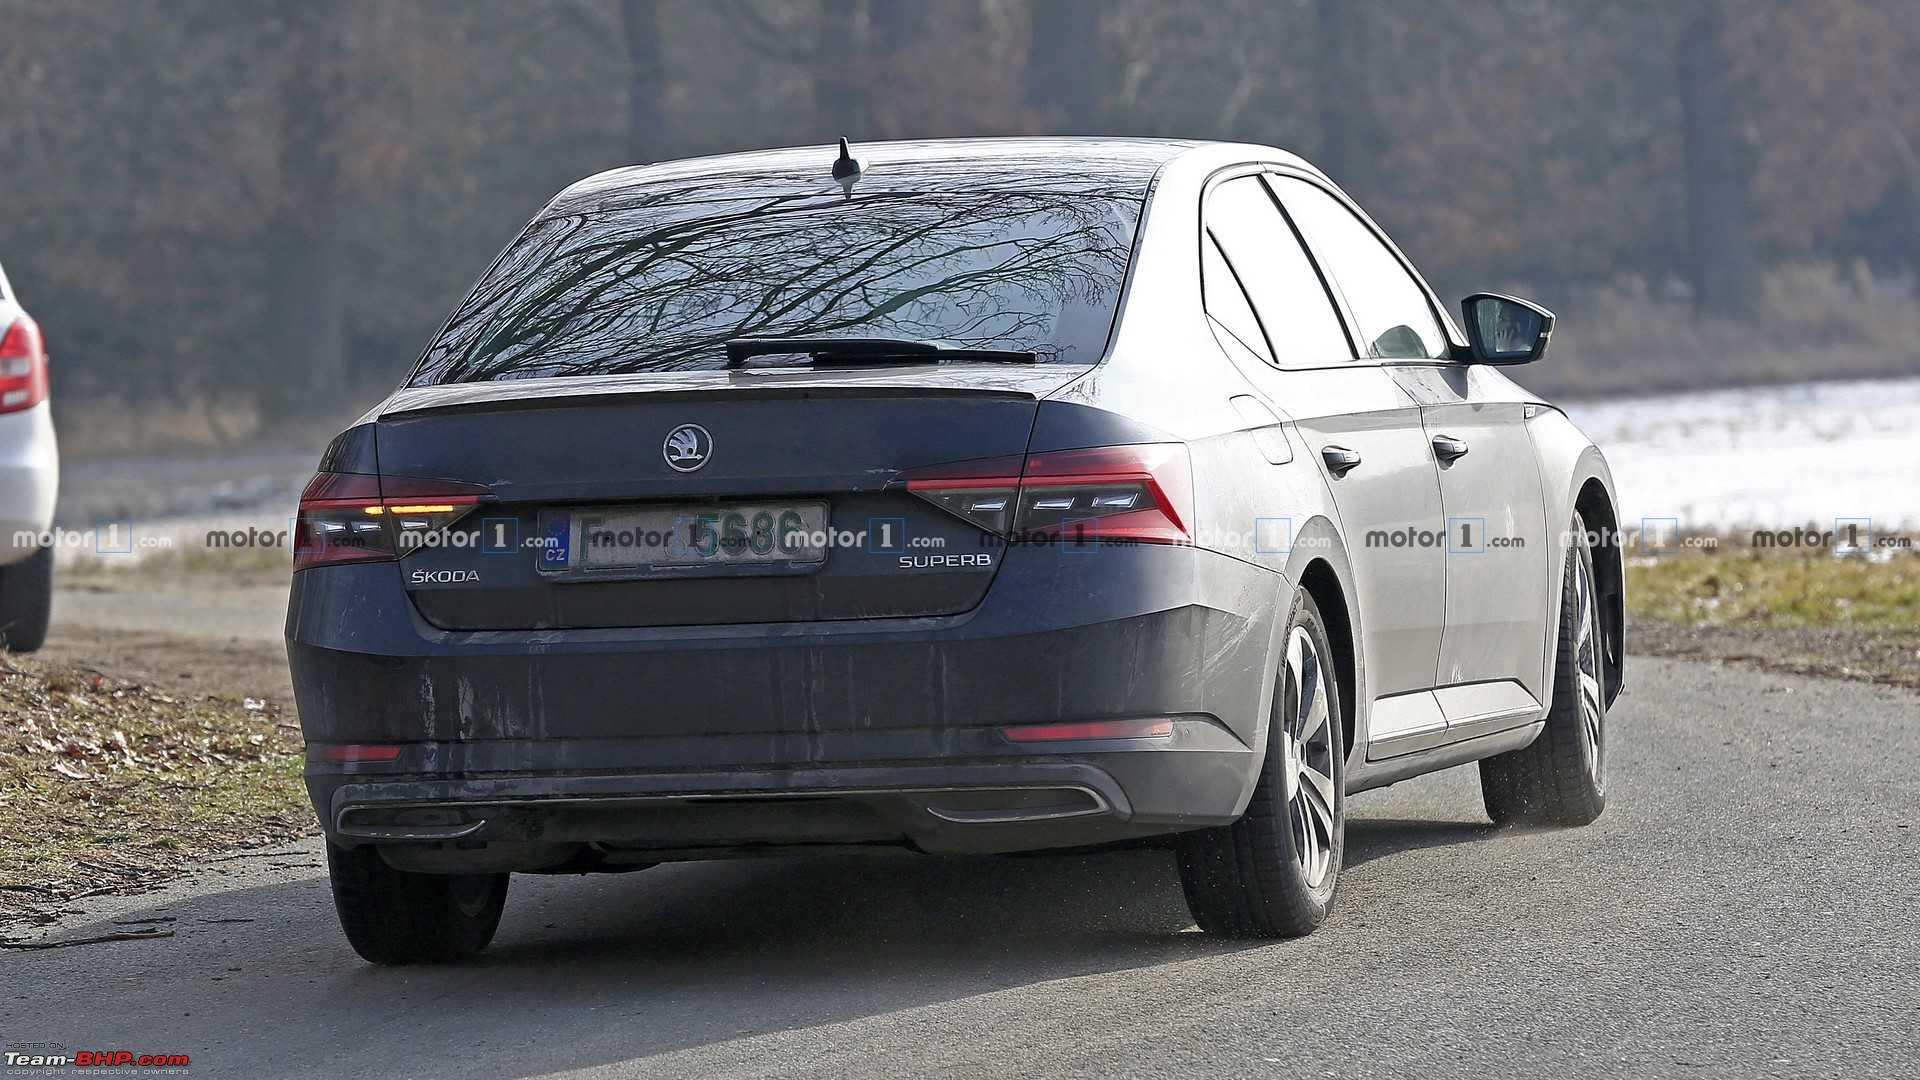 35 New Spy Shots Skoda Superb Concept And Review